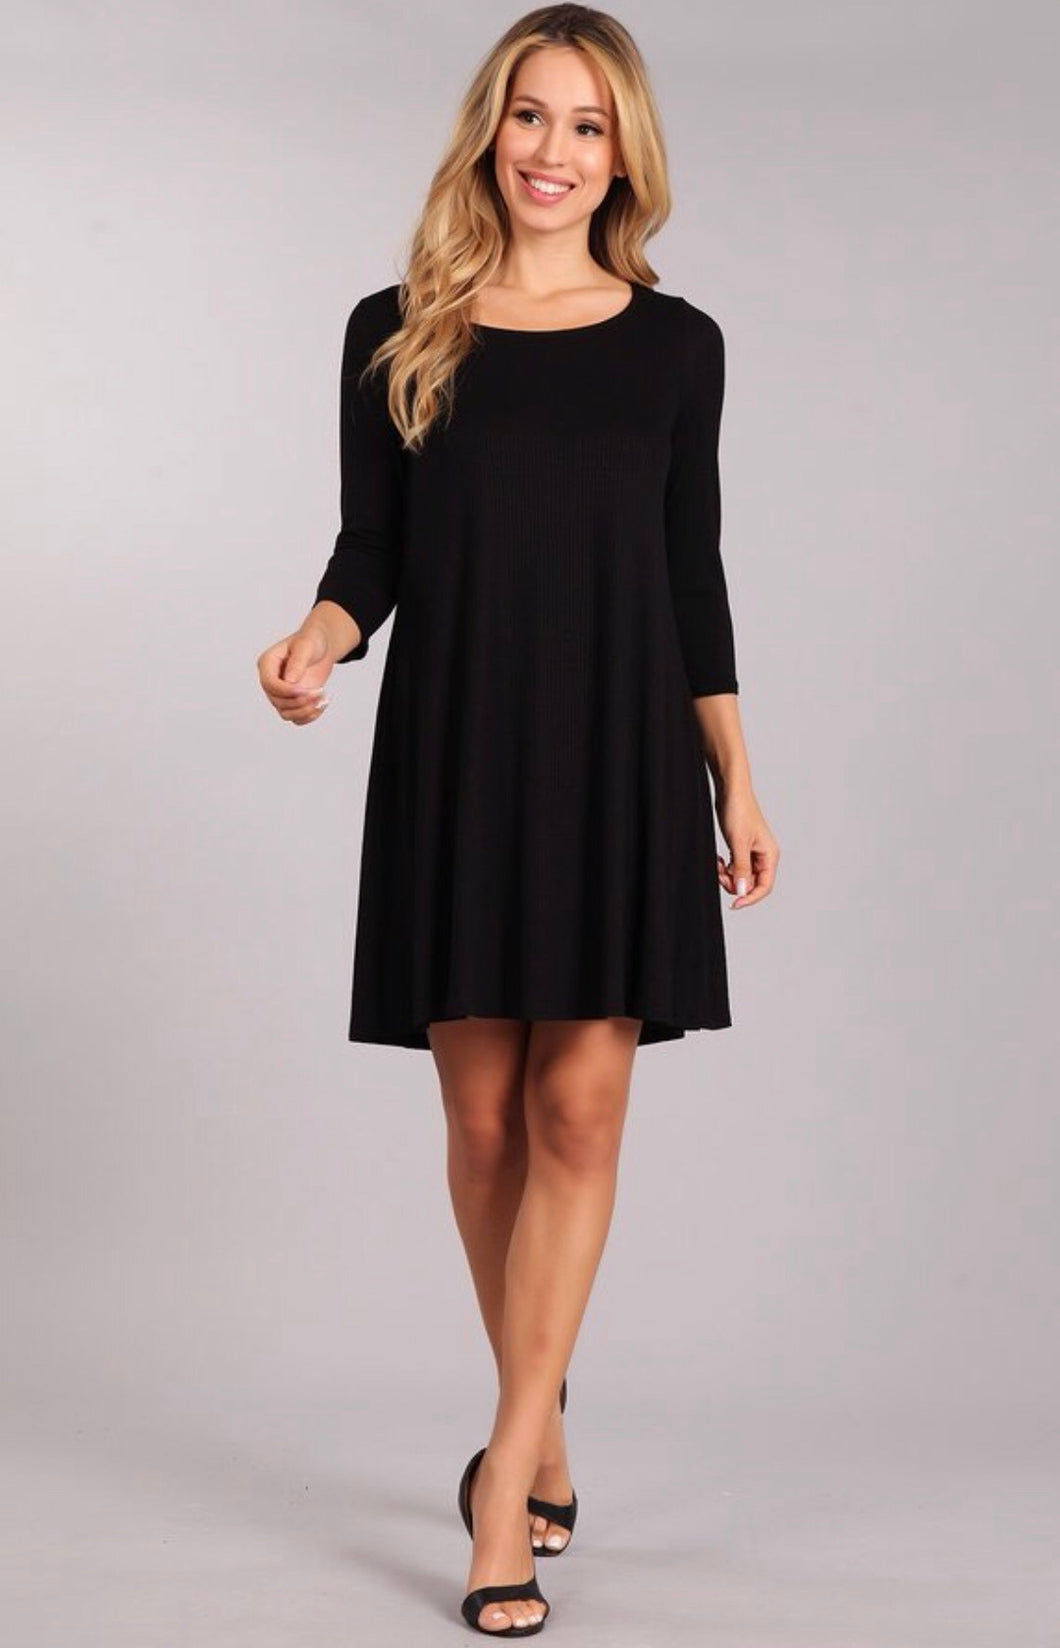 SOLID, 3/4 SLEEVE DRESS WITH A ROUND NECKLINE